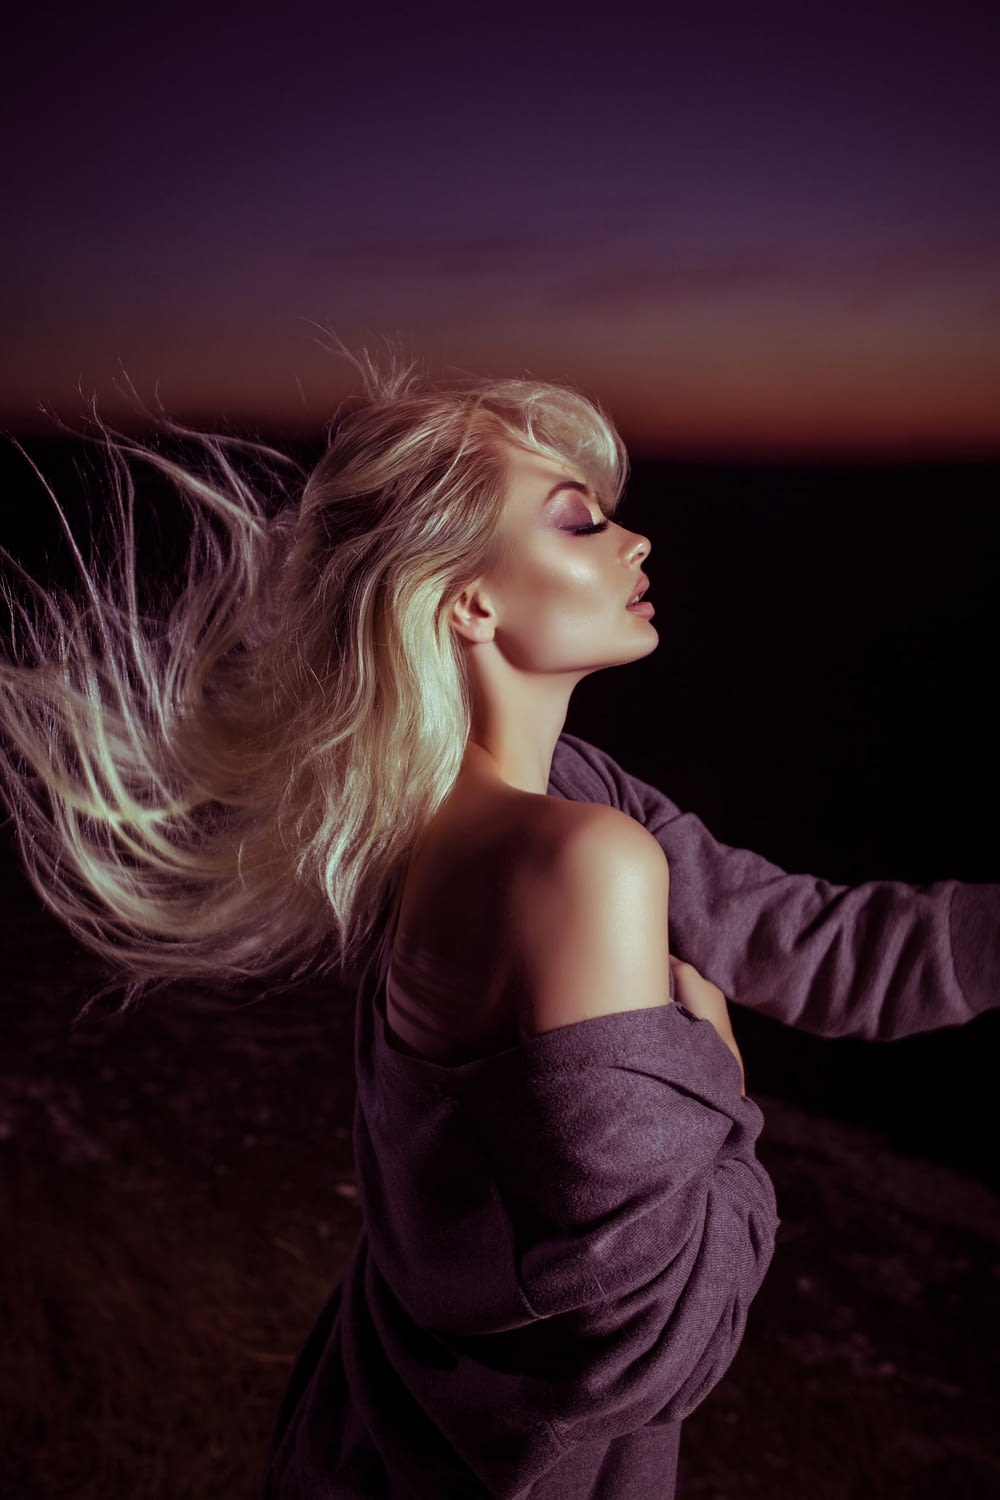 profile of woman with hair blowing behind her